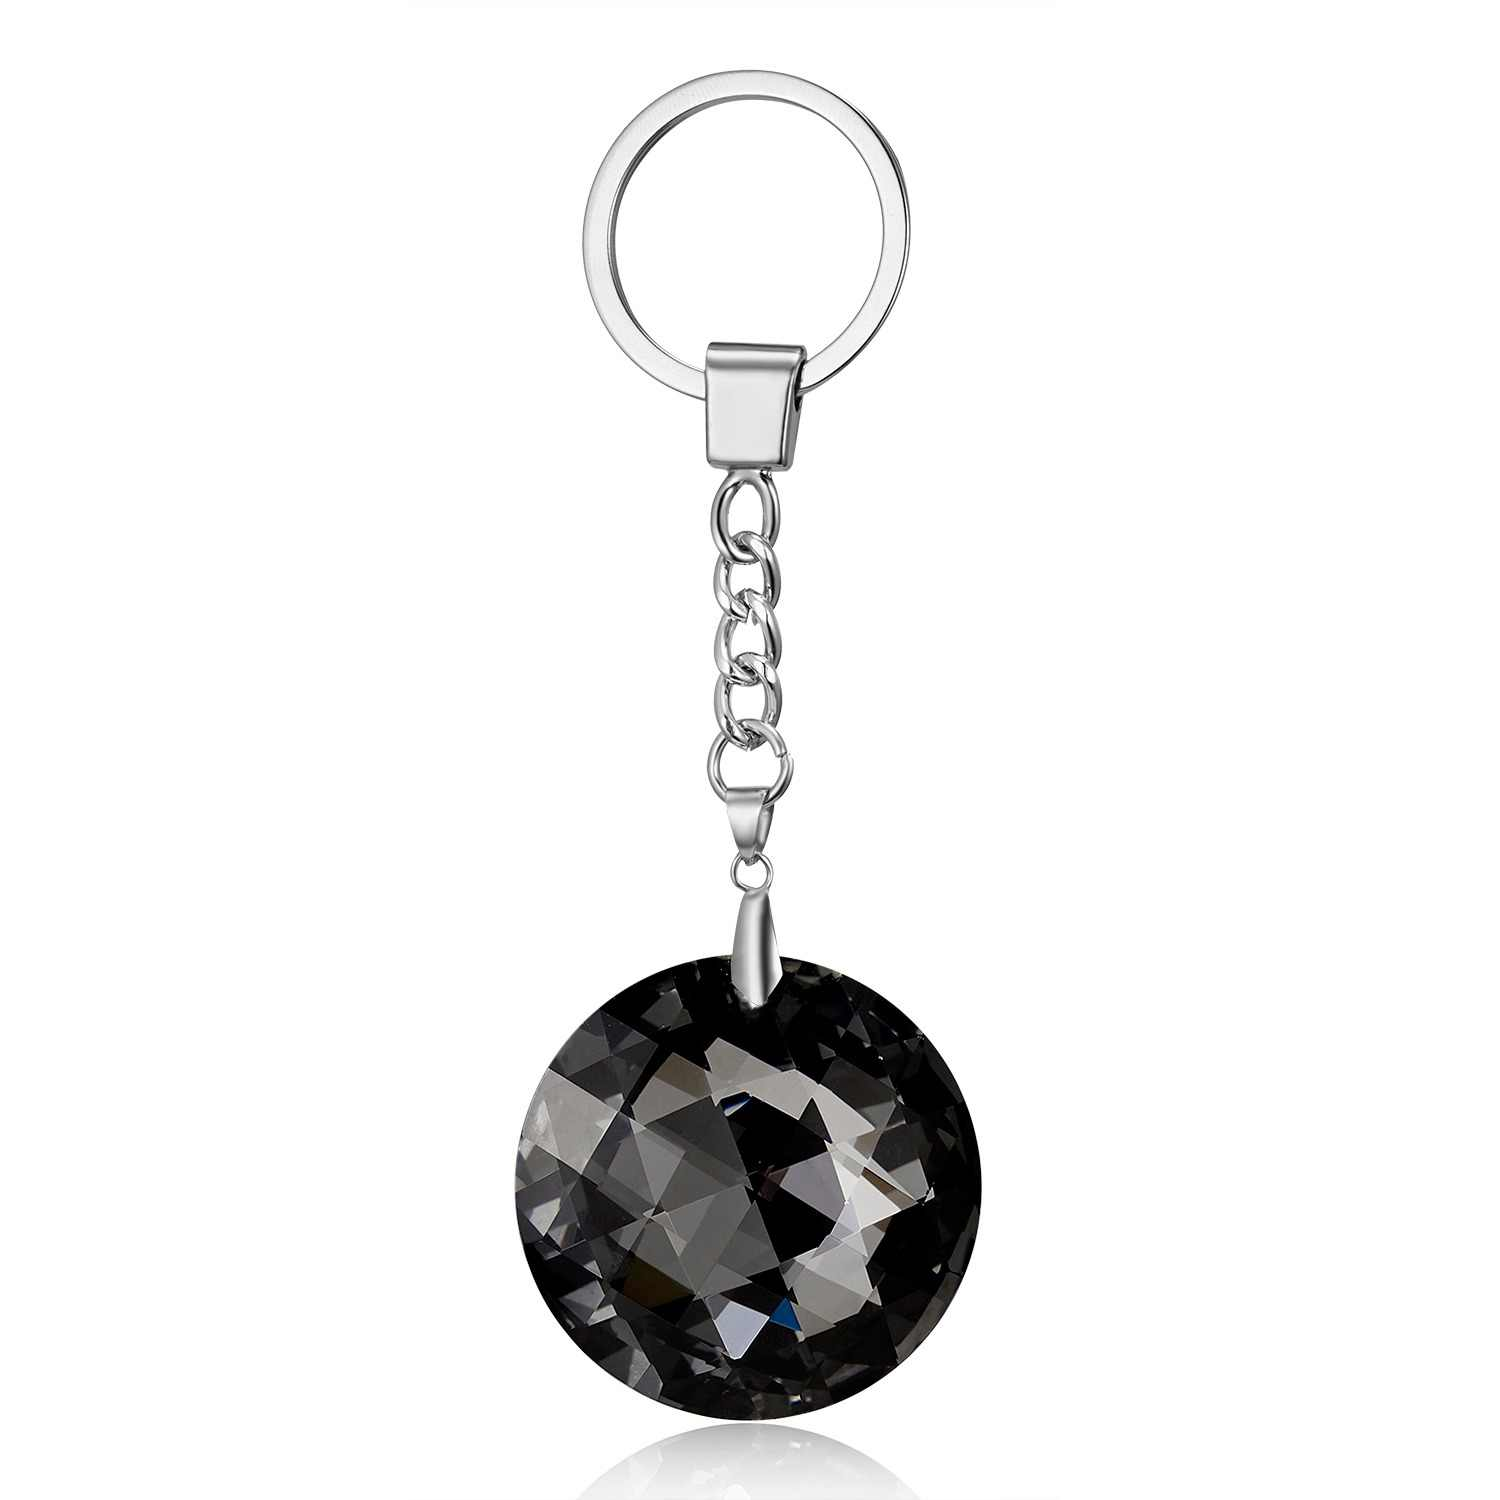 Rinhoo Shining Transparent Crystal Water Drop/Round Key Chain High Quality Fashion Jewelry Accessories Gift For Women